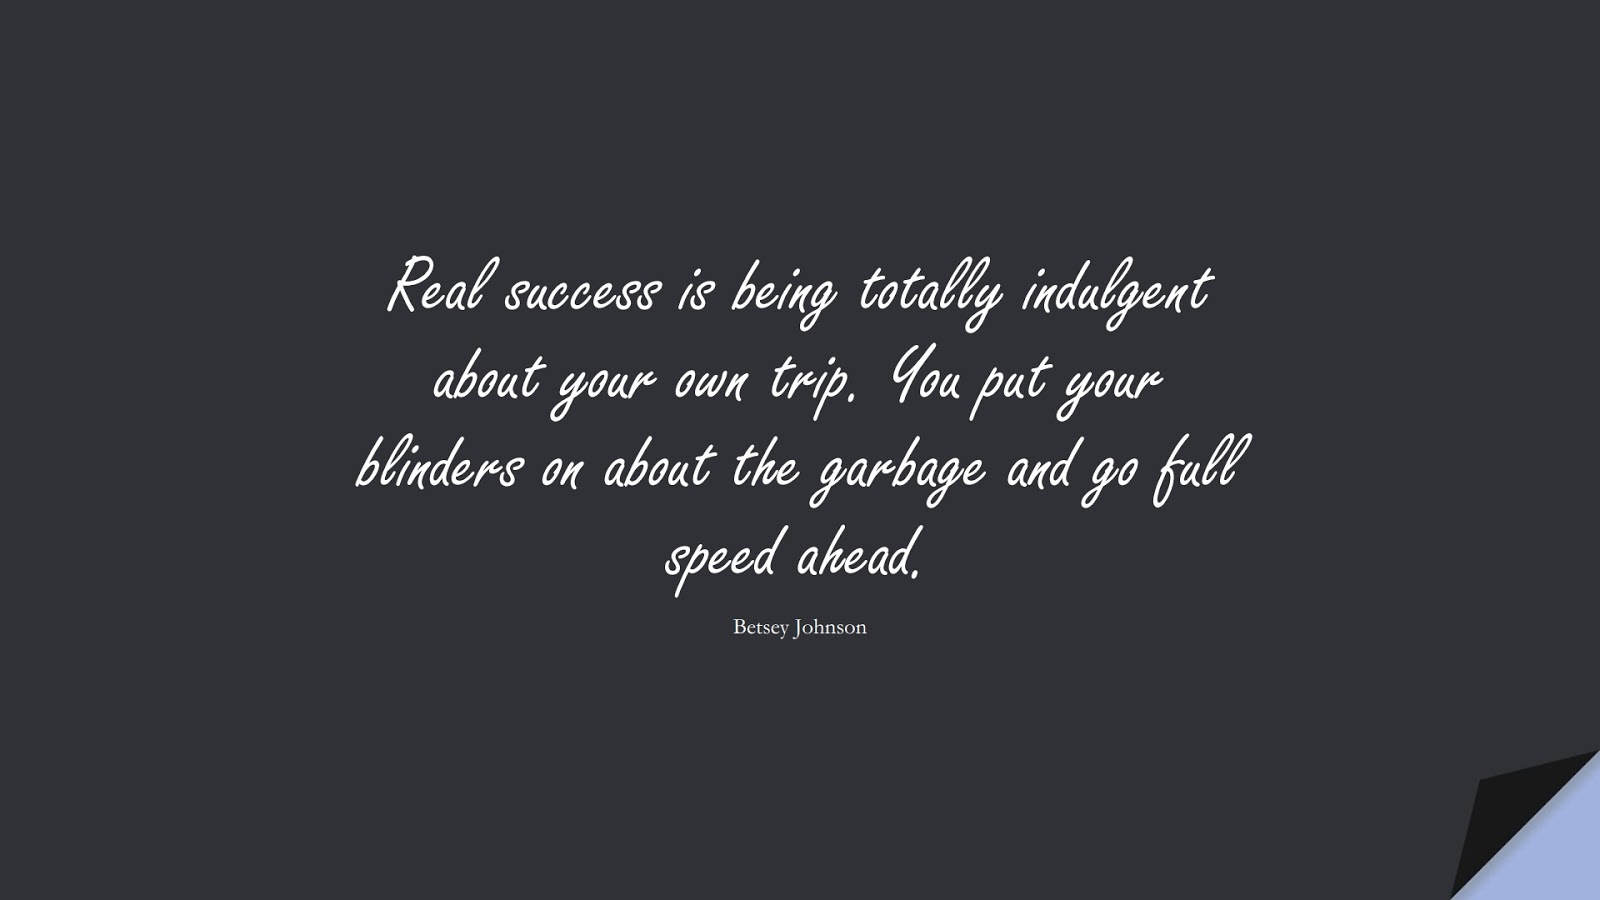 Real success is being totally indulgent about your own trip. You put your blinders on about the garbage and go full speed ahead. (Betsey Johnson);  #SuccessQuotes